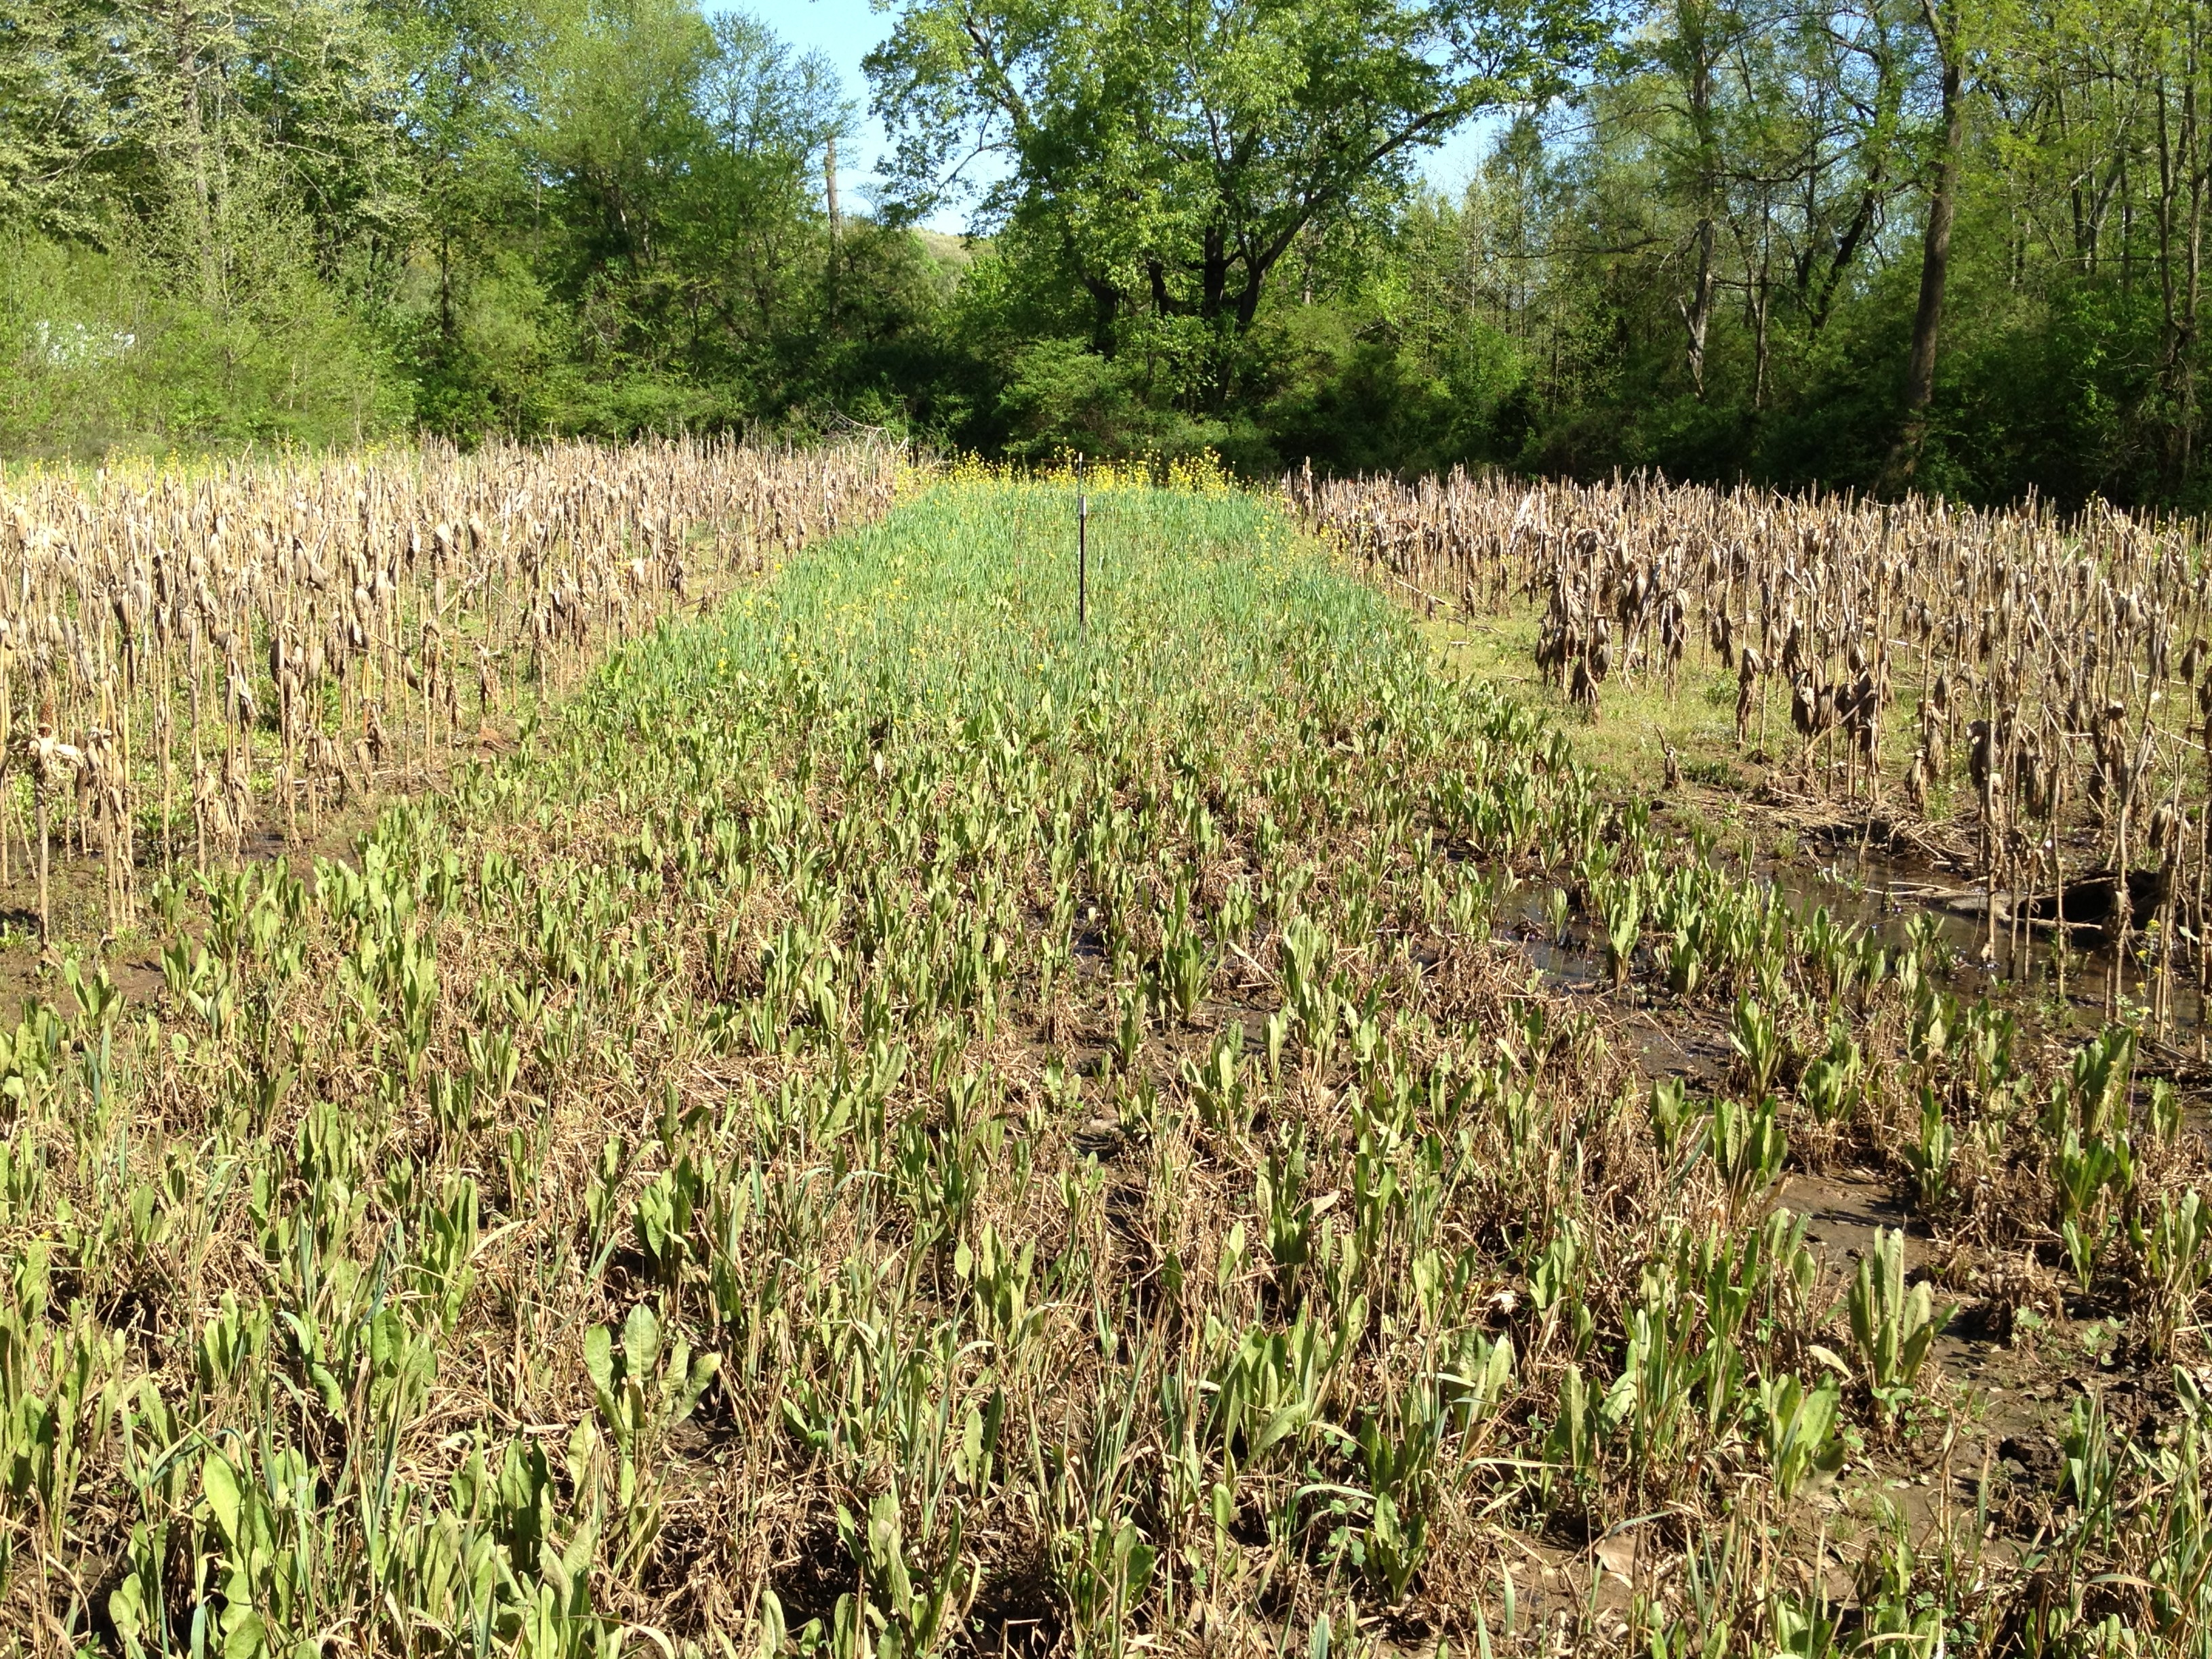 Chicory Thrives After Flooding 4/18/13